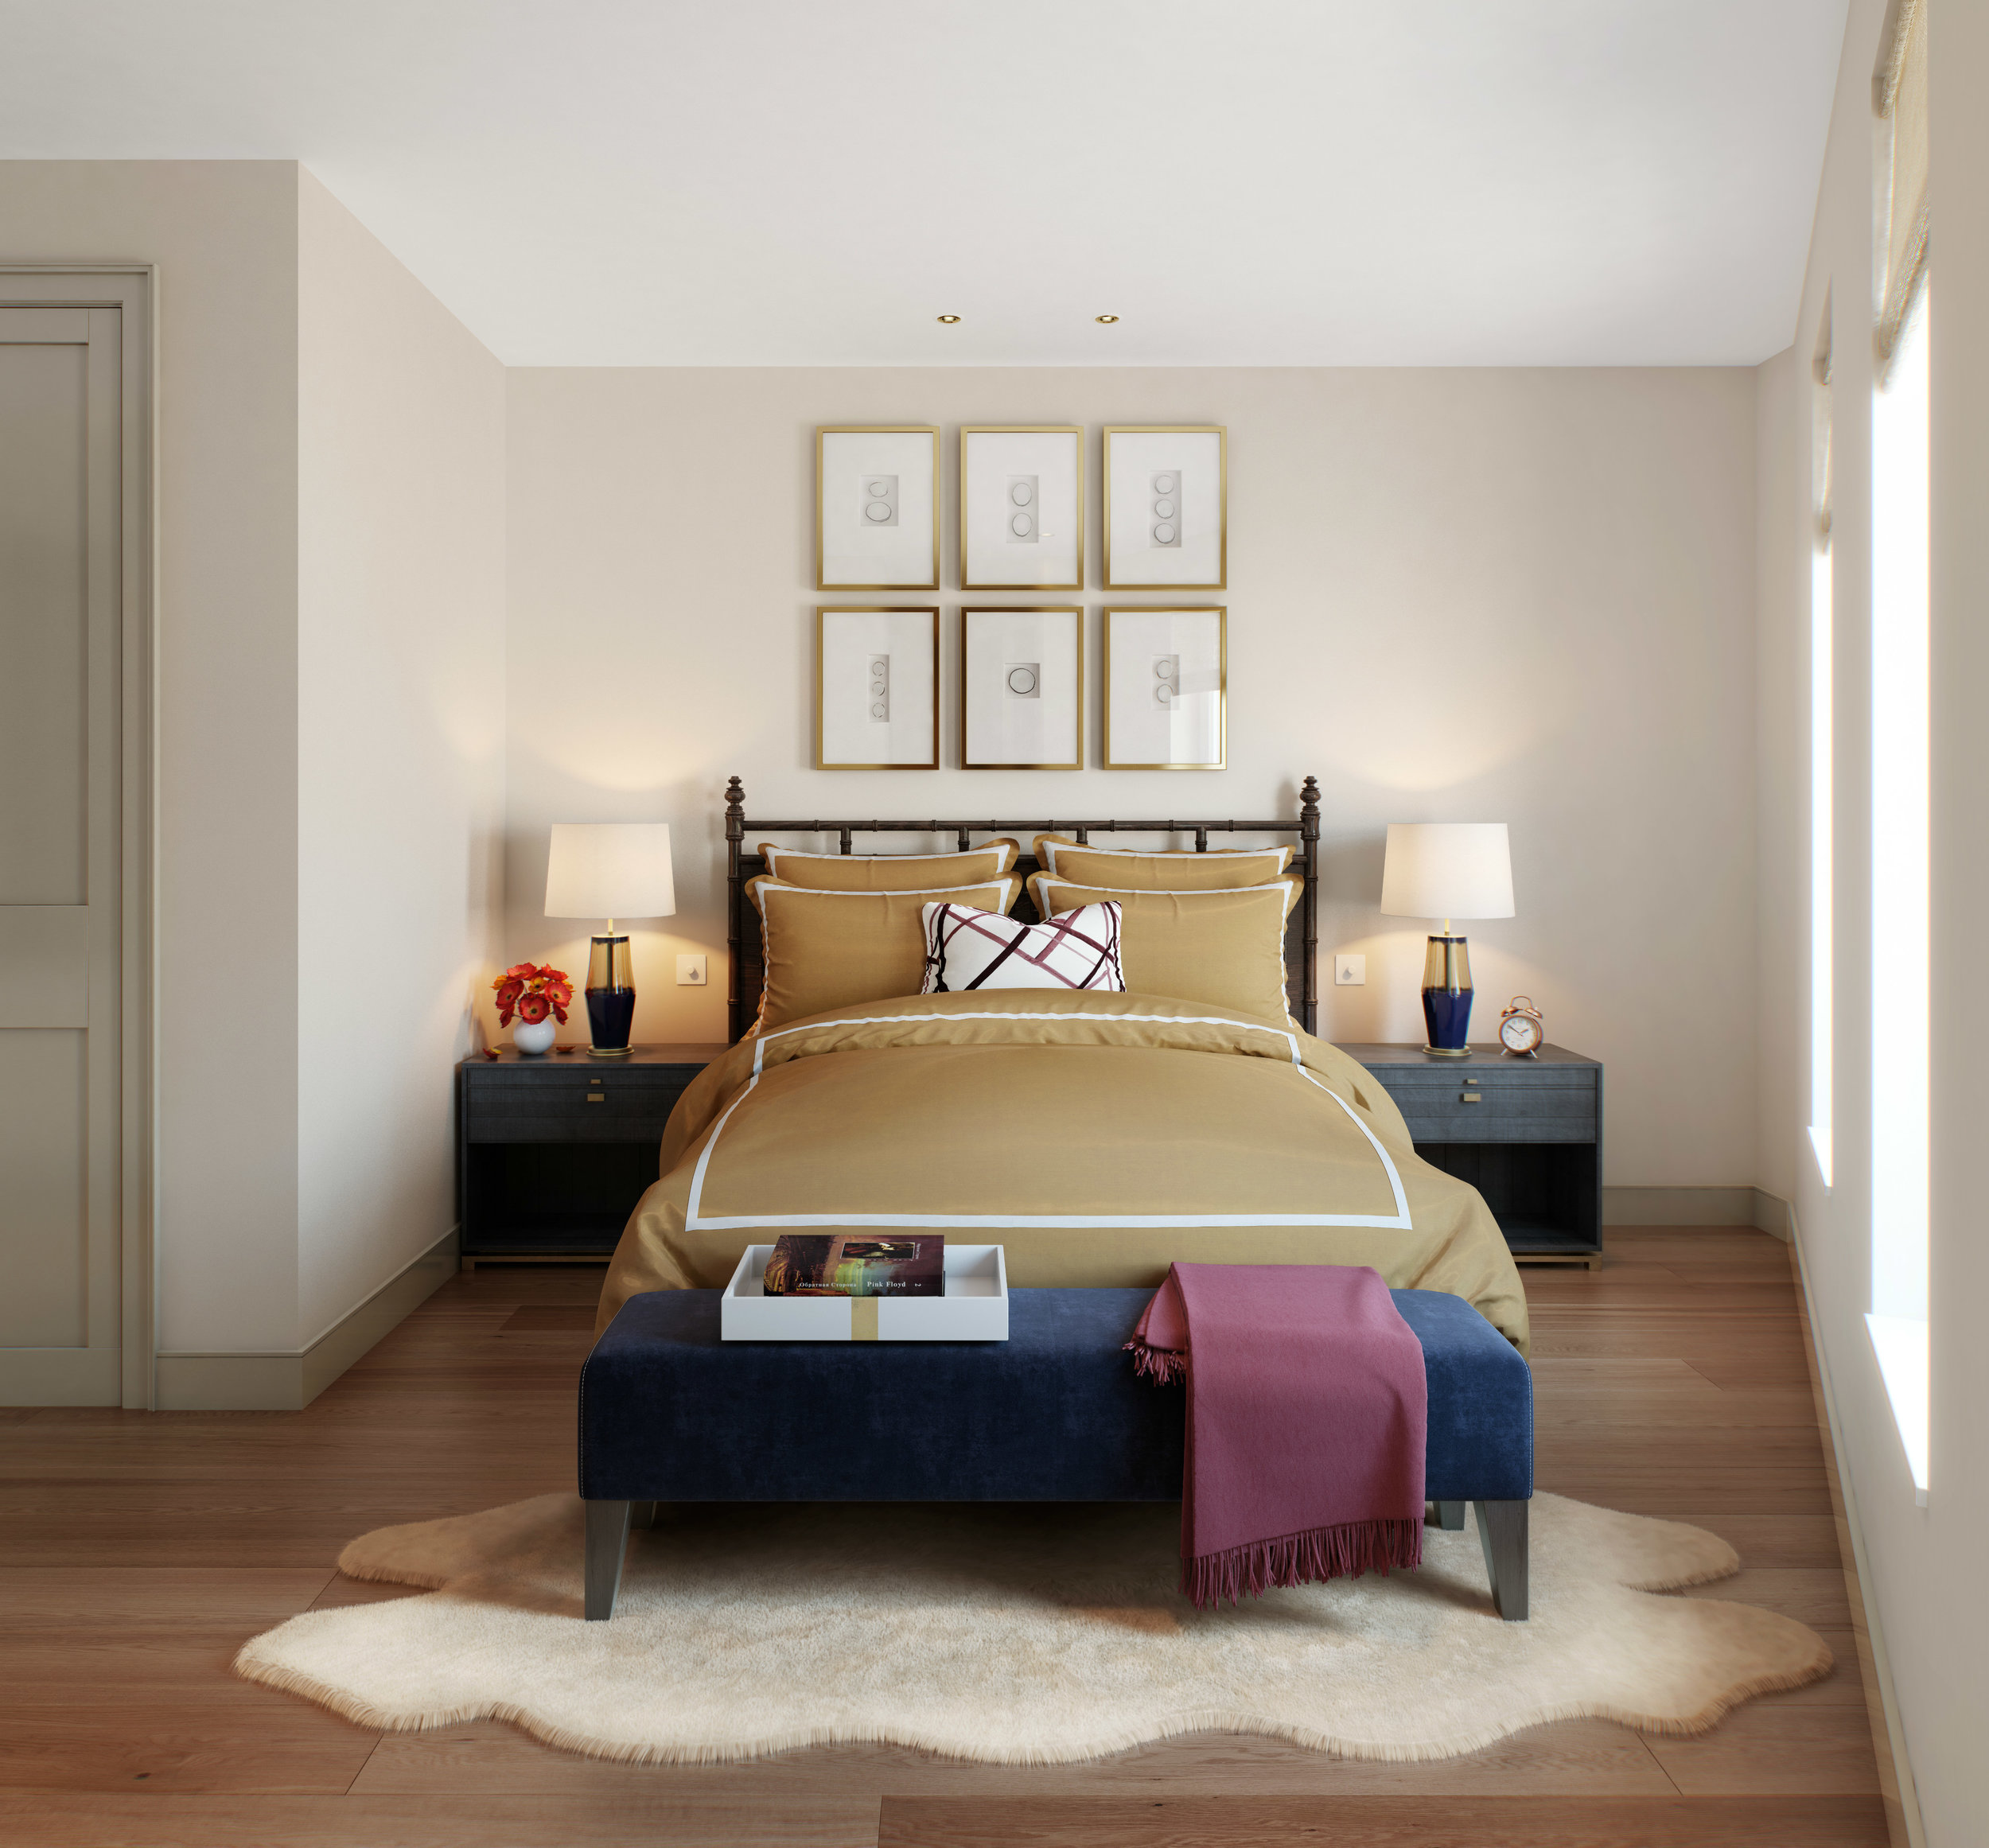 Westminster Fire Station Bedroom CGI styled by Studio L London and rendered by Visualisation One